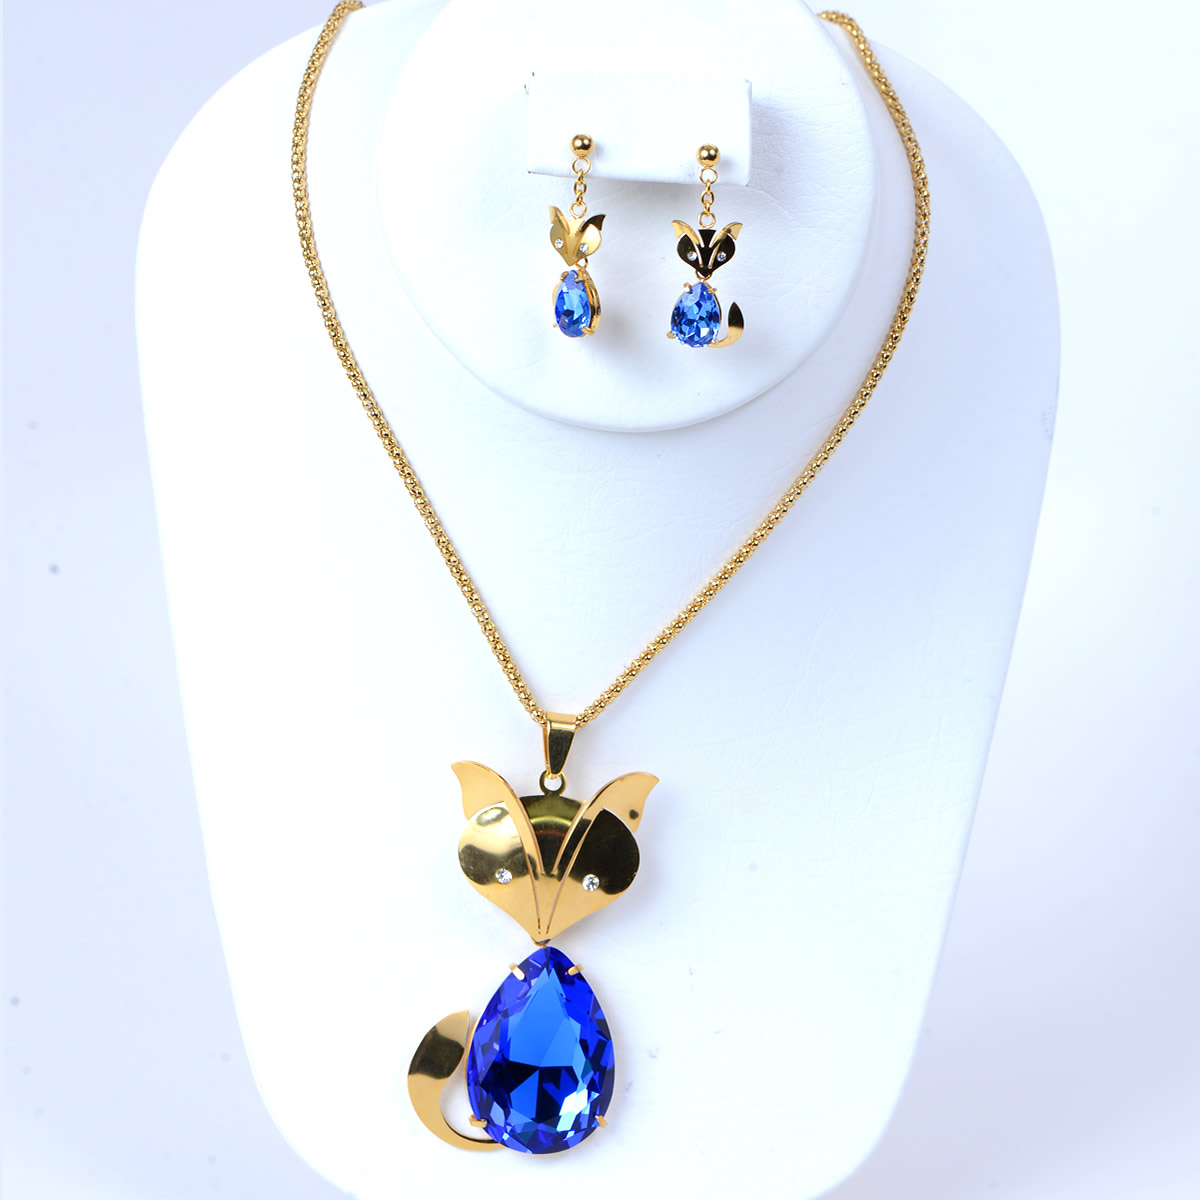 Crystal Rhinestone Cat Earrings & Pendant Necklace Jewelry Set